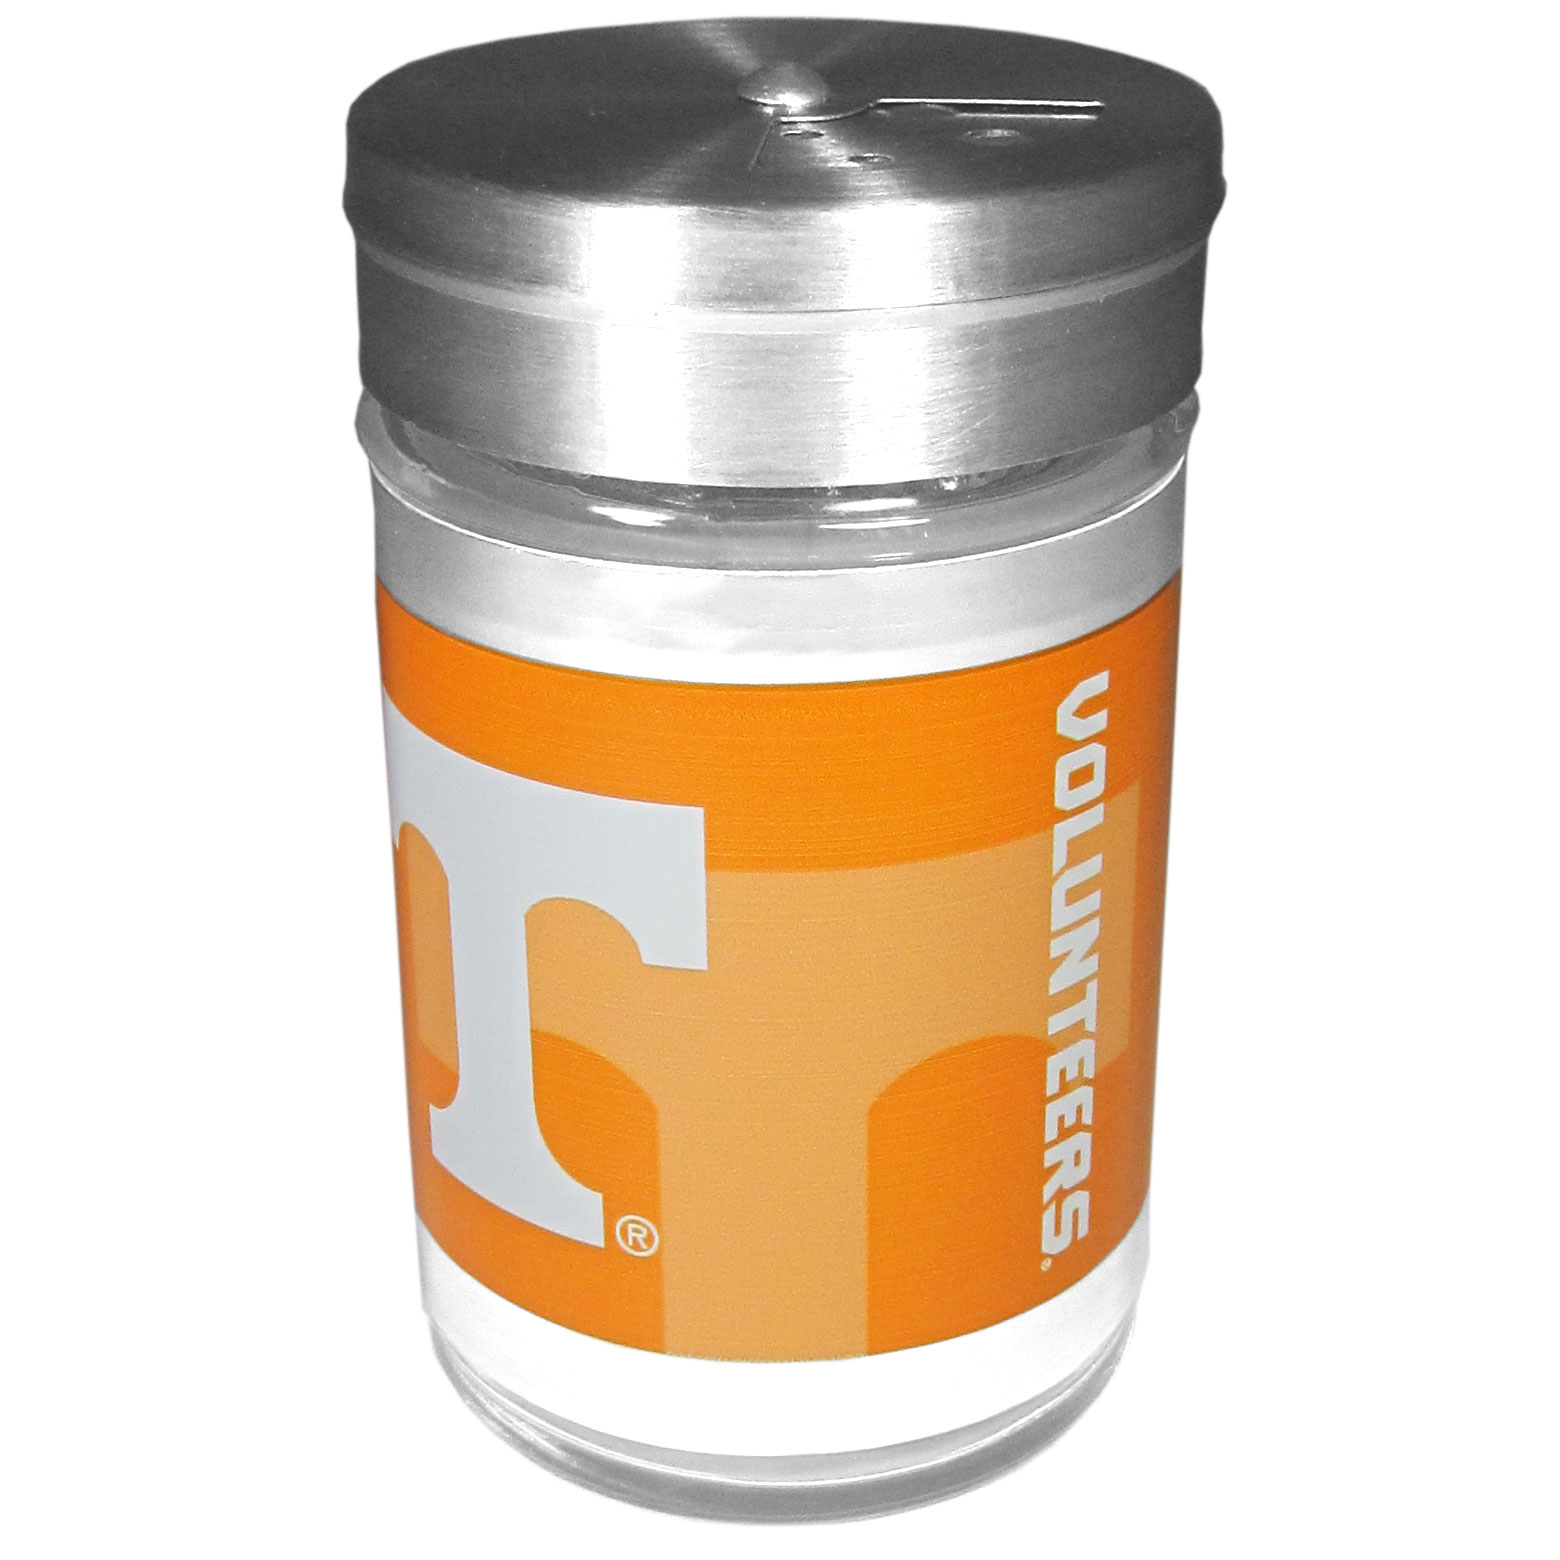 Tennessee Volunteers Tailgater Season Shakers - Spice it up with our Tennessee Volunteers tailgater season shakers! This compact shaker is 2 inch tall with a twist top that closes off the holes at the top making it perfect for travel preventing those messy spills. The shaker has wide holes perfect for keeping your pepper seeds or cheese toppings. The bright team graphics will make you the envy of the other fans while you are grilling up your tailgating goodies.